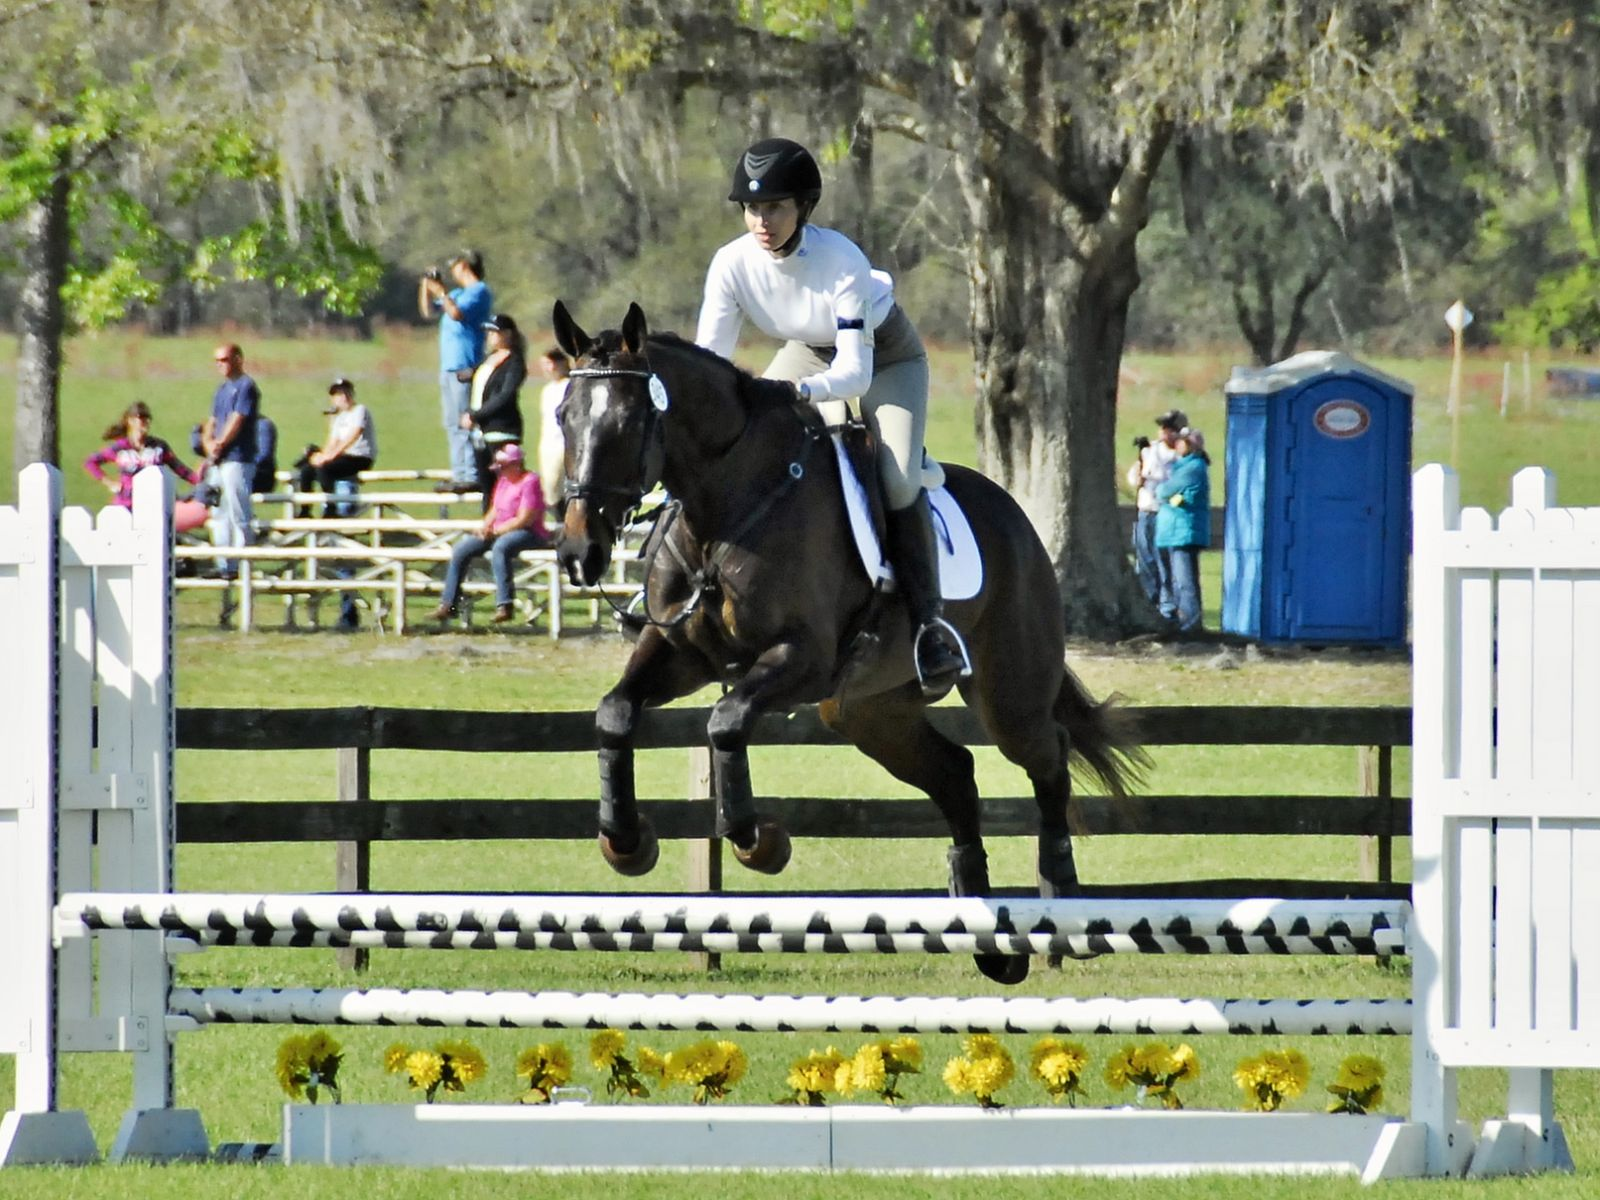 Aero overcame his anxiety enough to jump a clear round for his first time at a show.  Photo by Ivegotyourpicture.com.